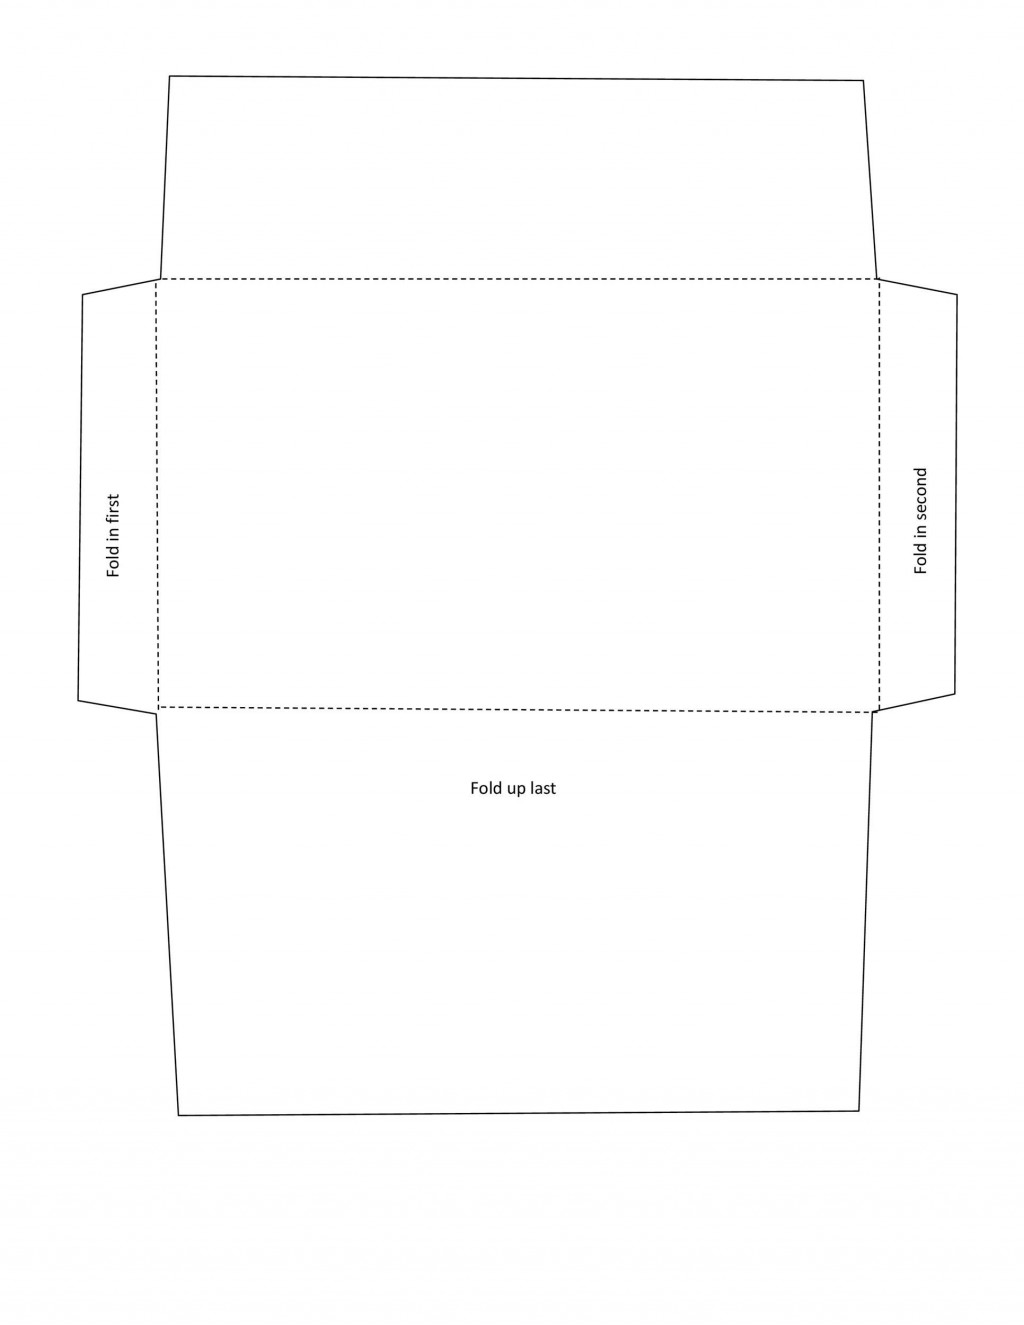 007 Awful Envelope Template For Word High Definition  Avery A7 5x7 MicrosoftLarge